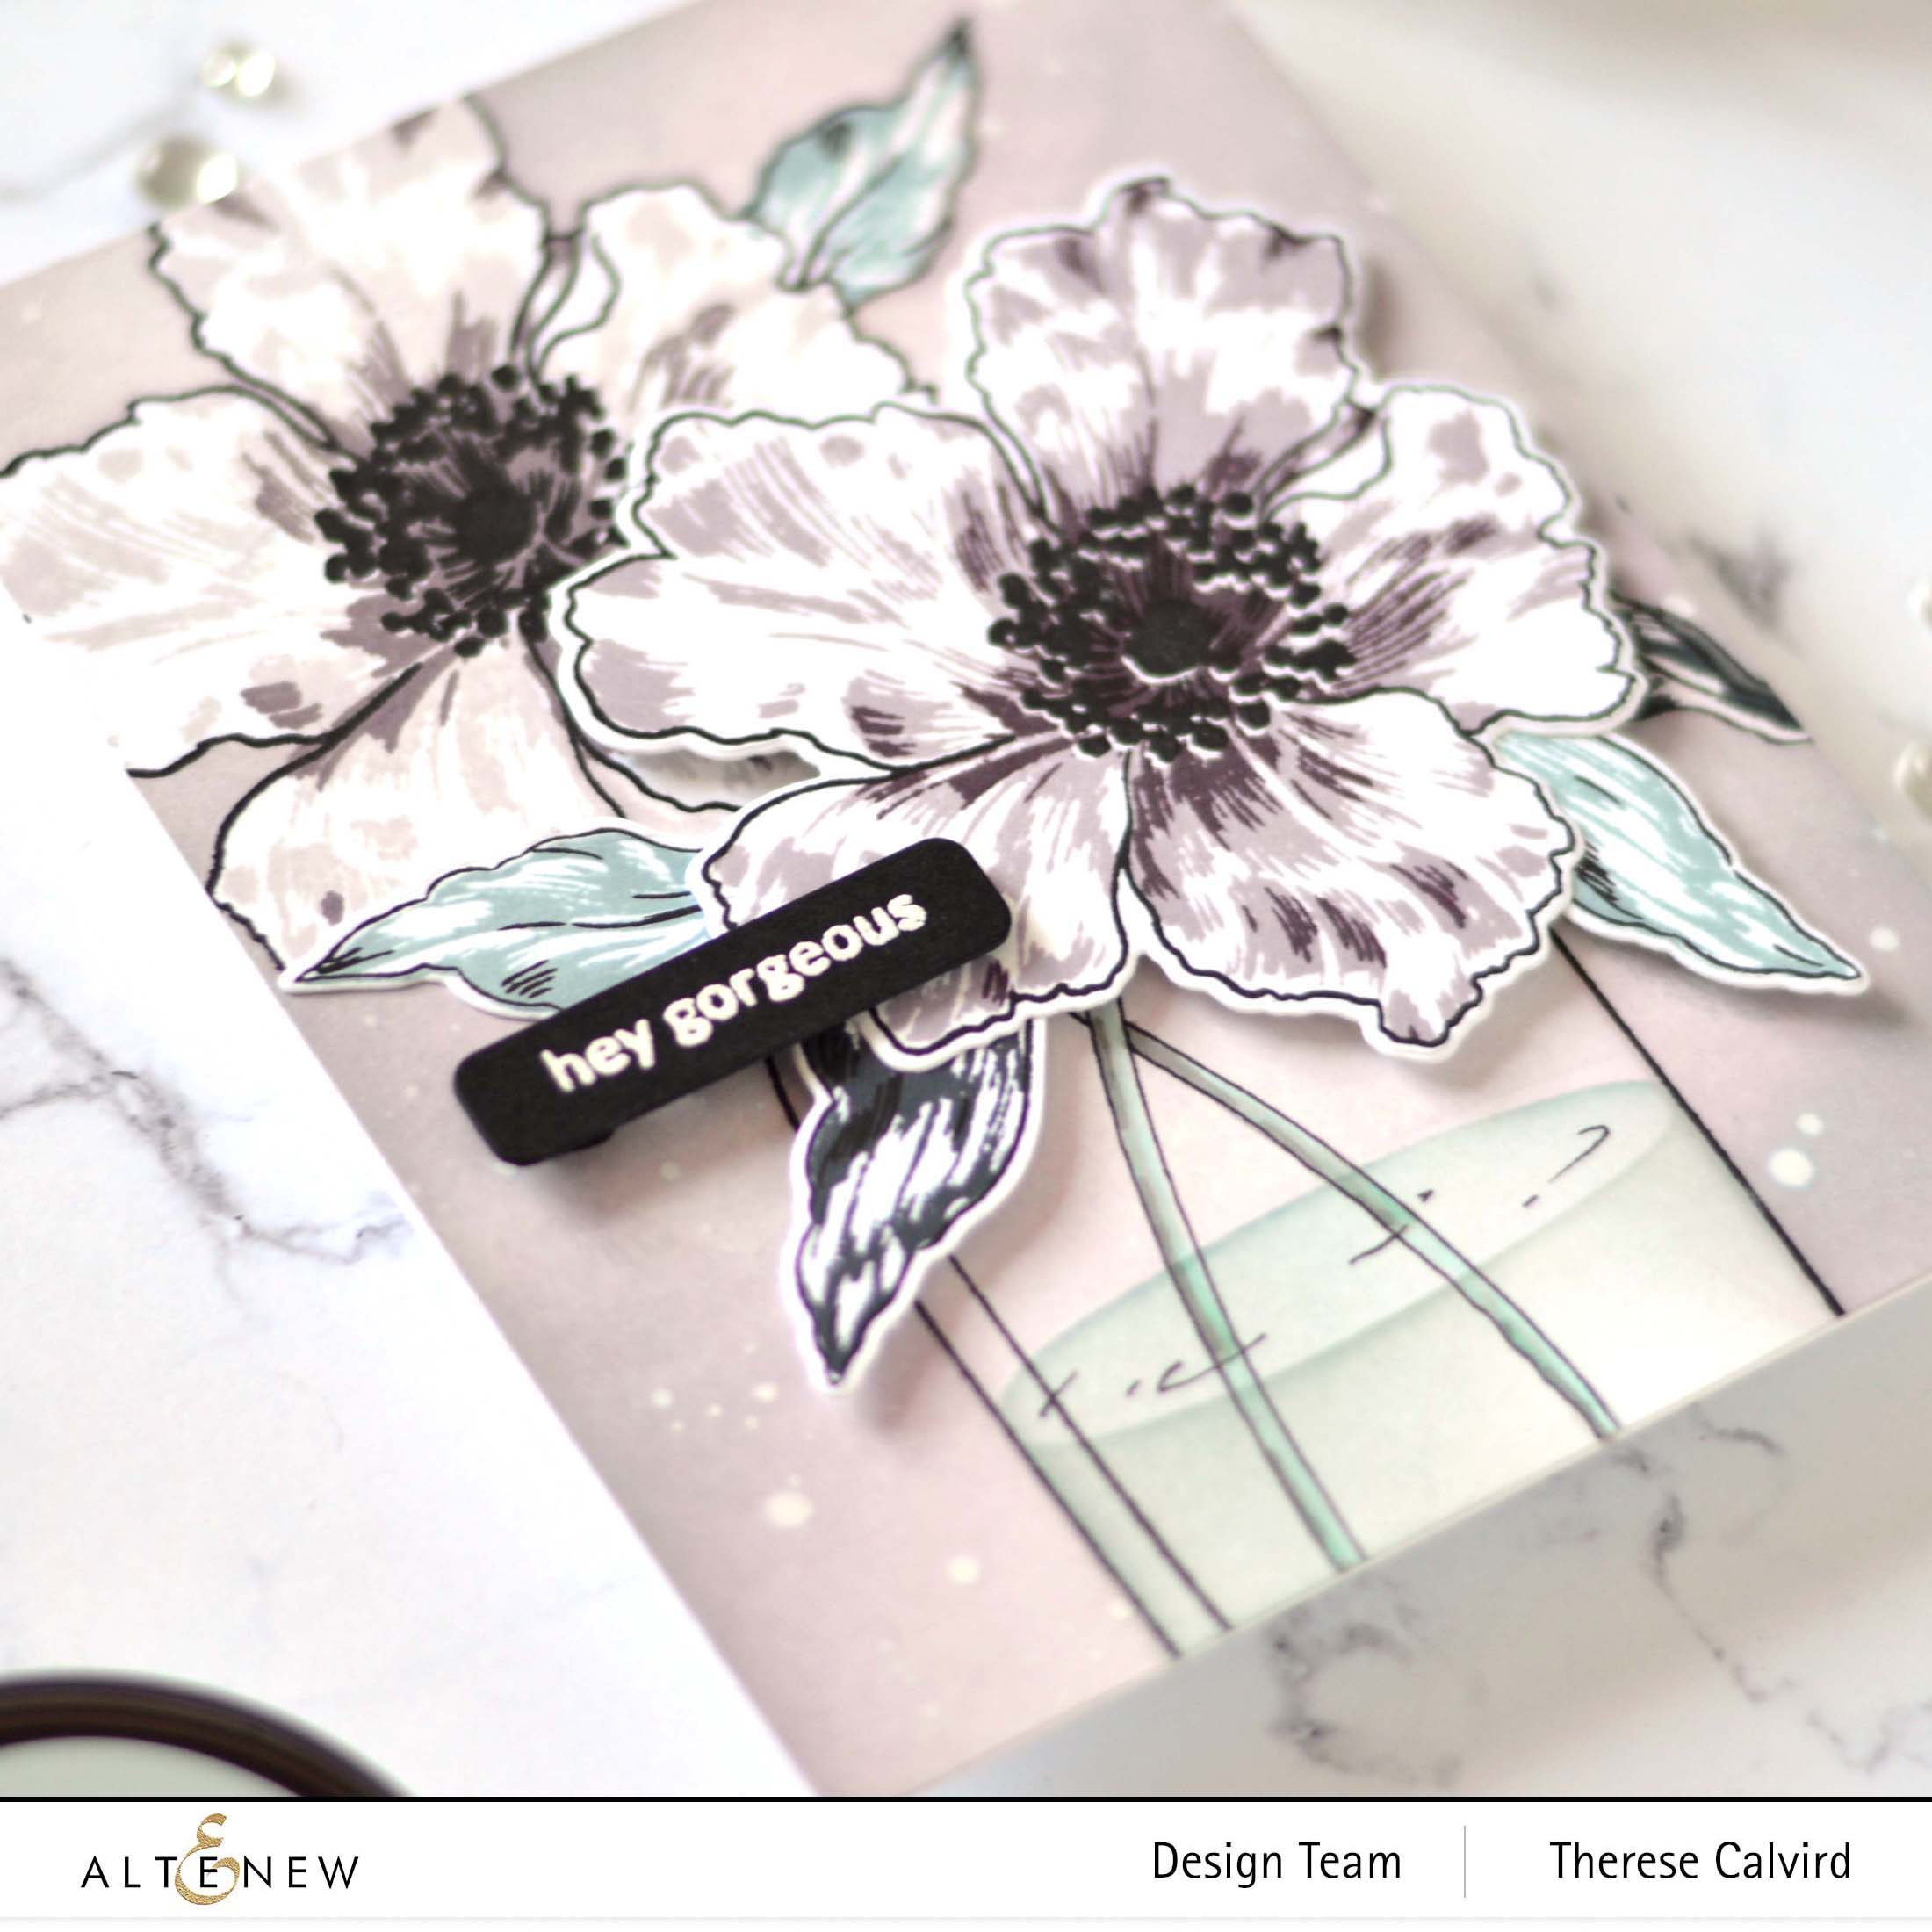 Altenew - Versatile Vases 2 - Sparkled - Featured Sentiments - Delicate Flower Bed - Take 2 With Therese video 2 copy